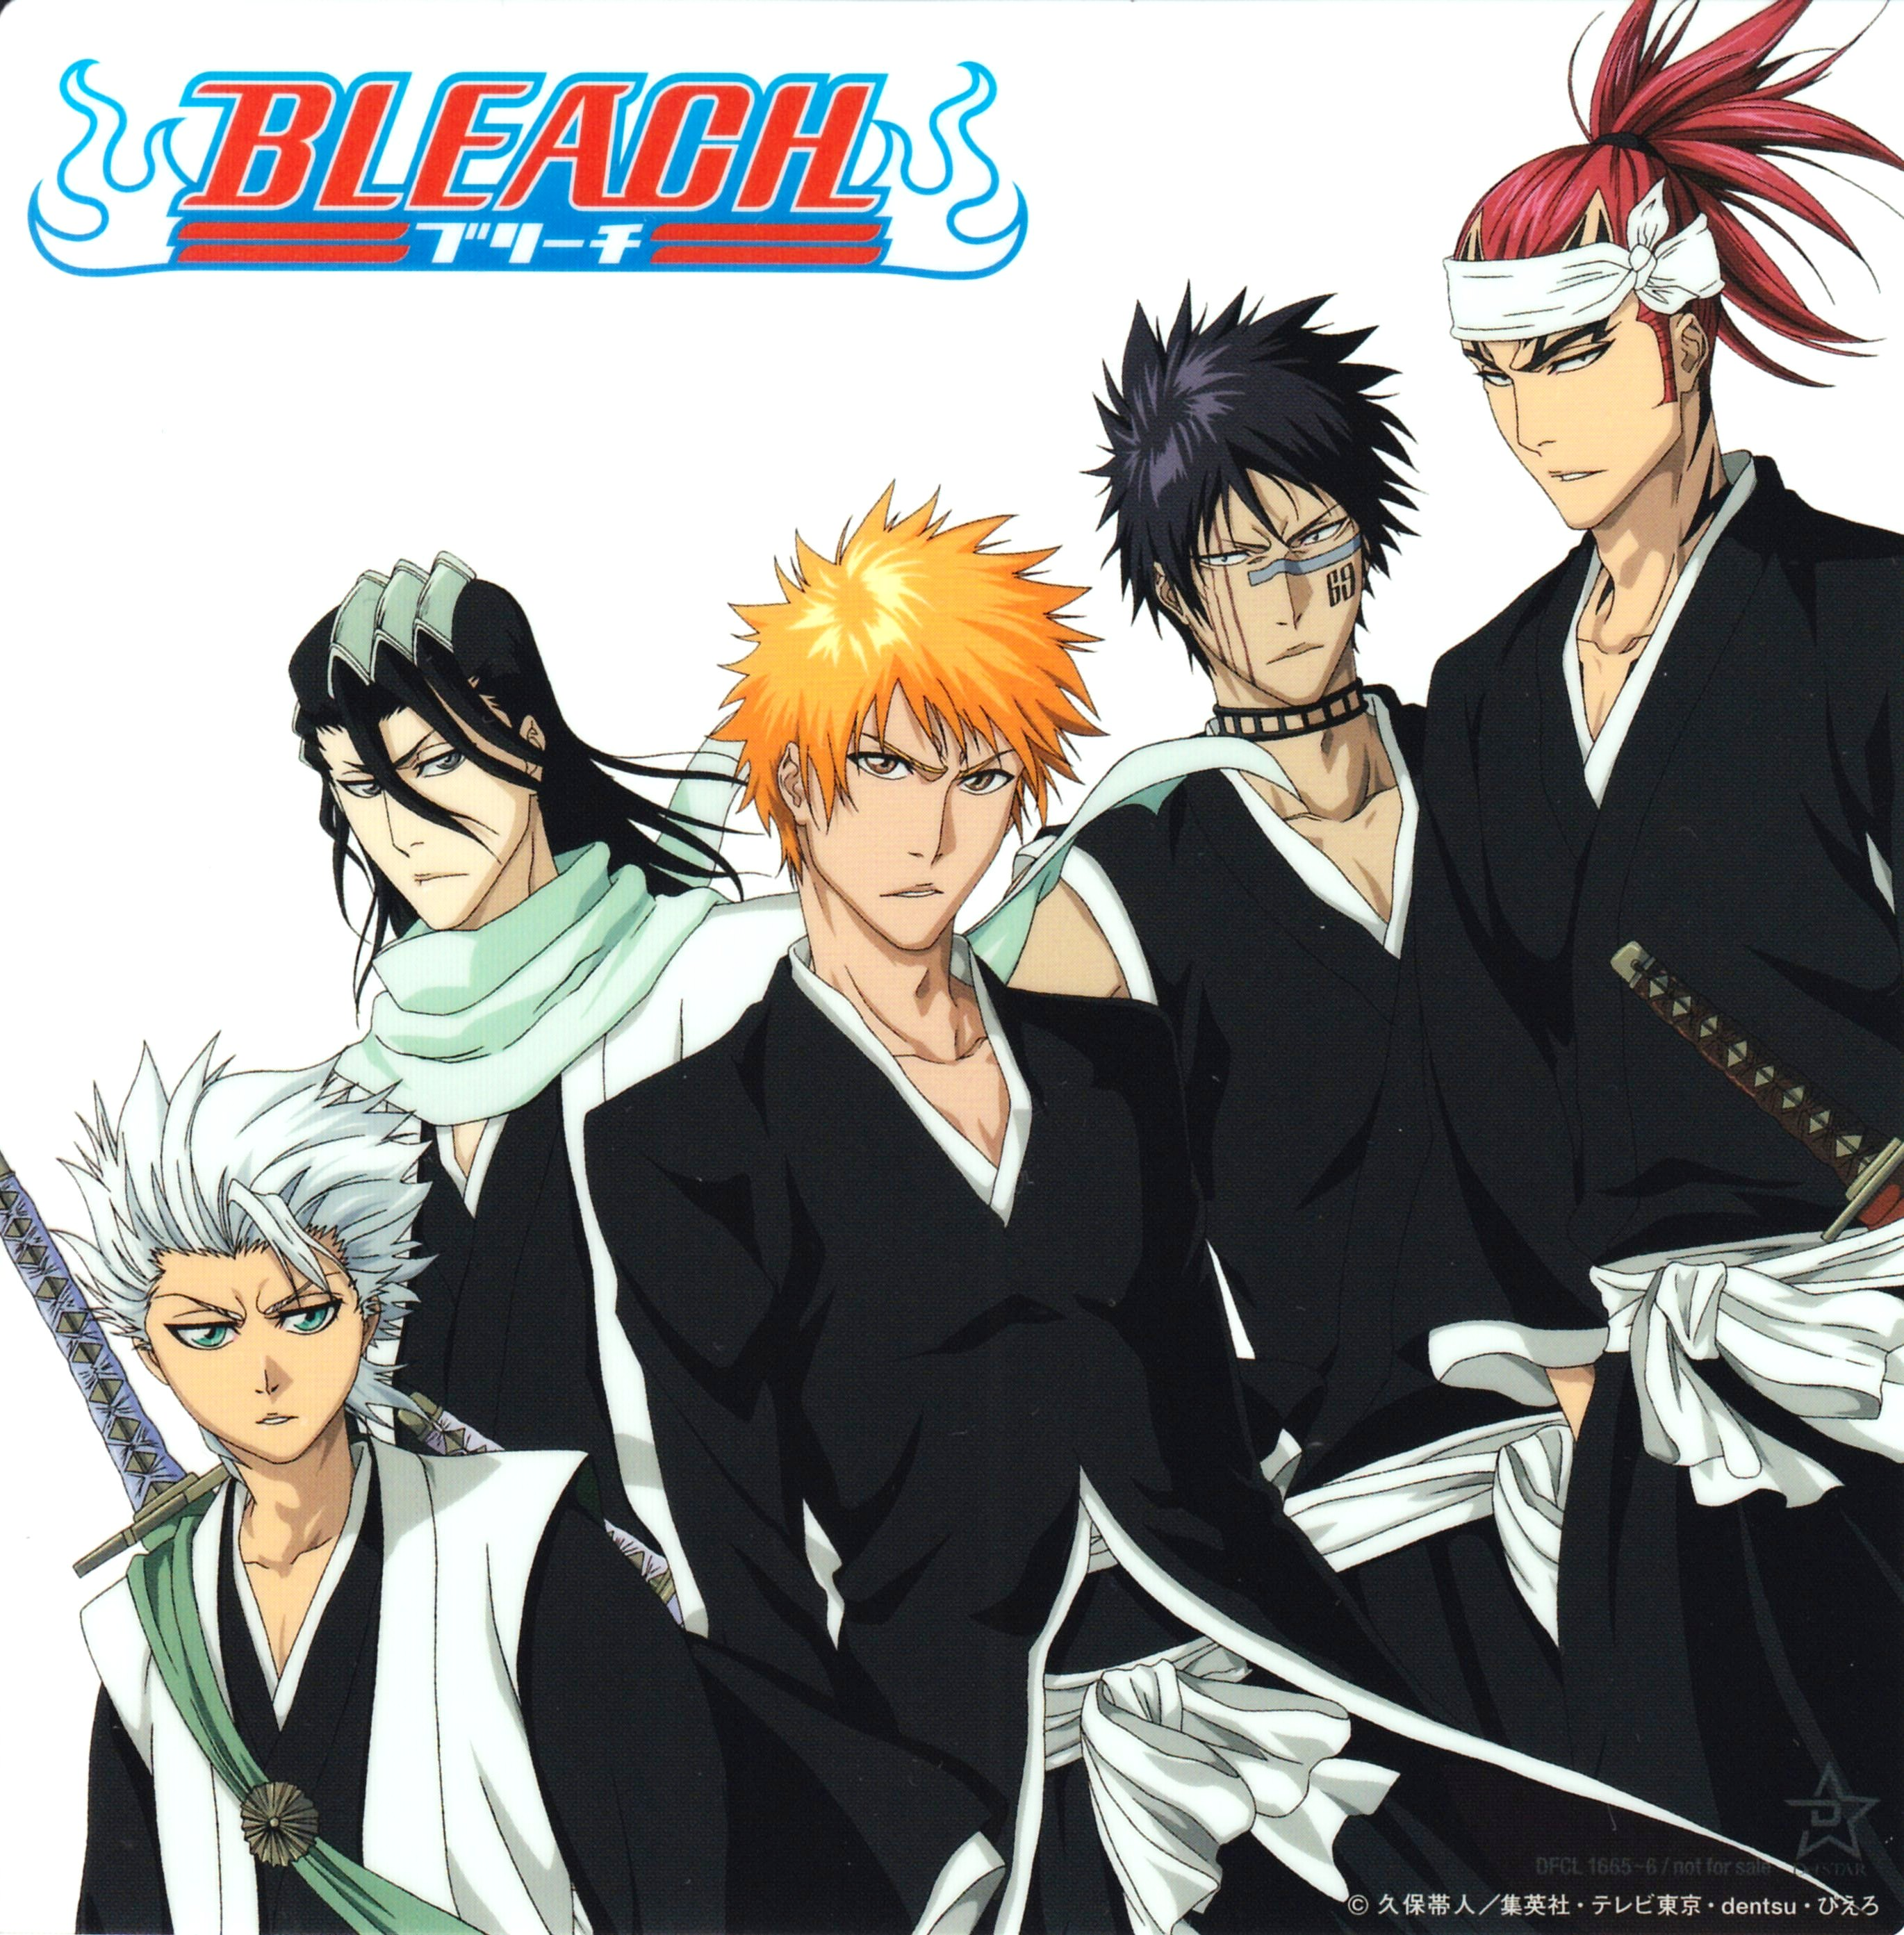 Anime Characters From Bleach : Bleach anime images characters hd wallpaper and